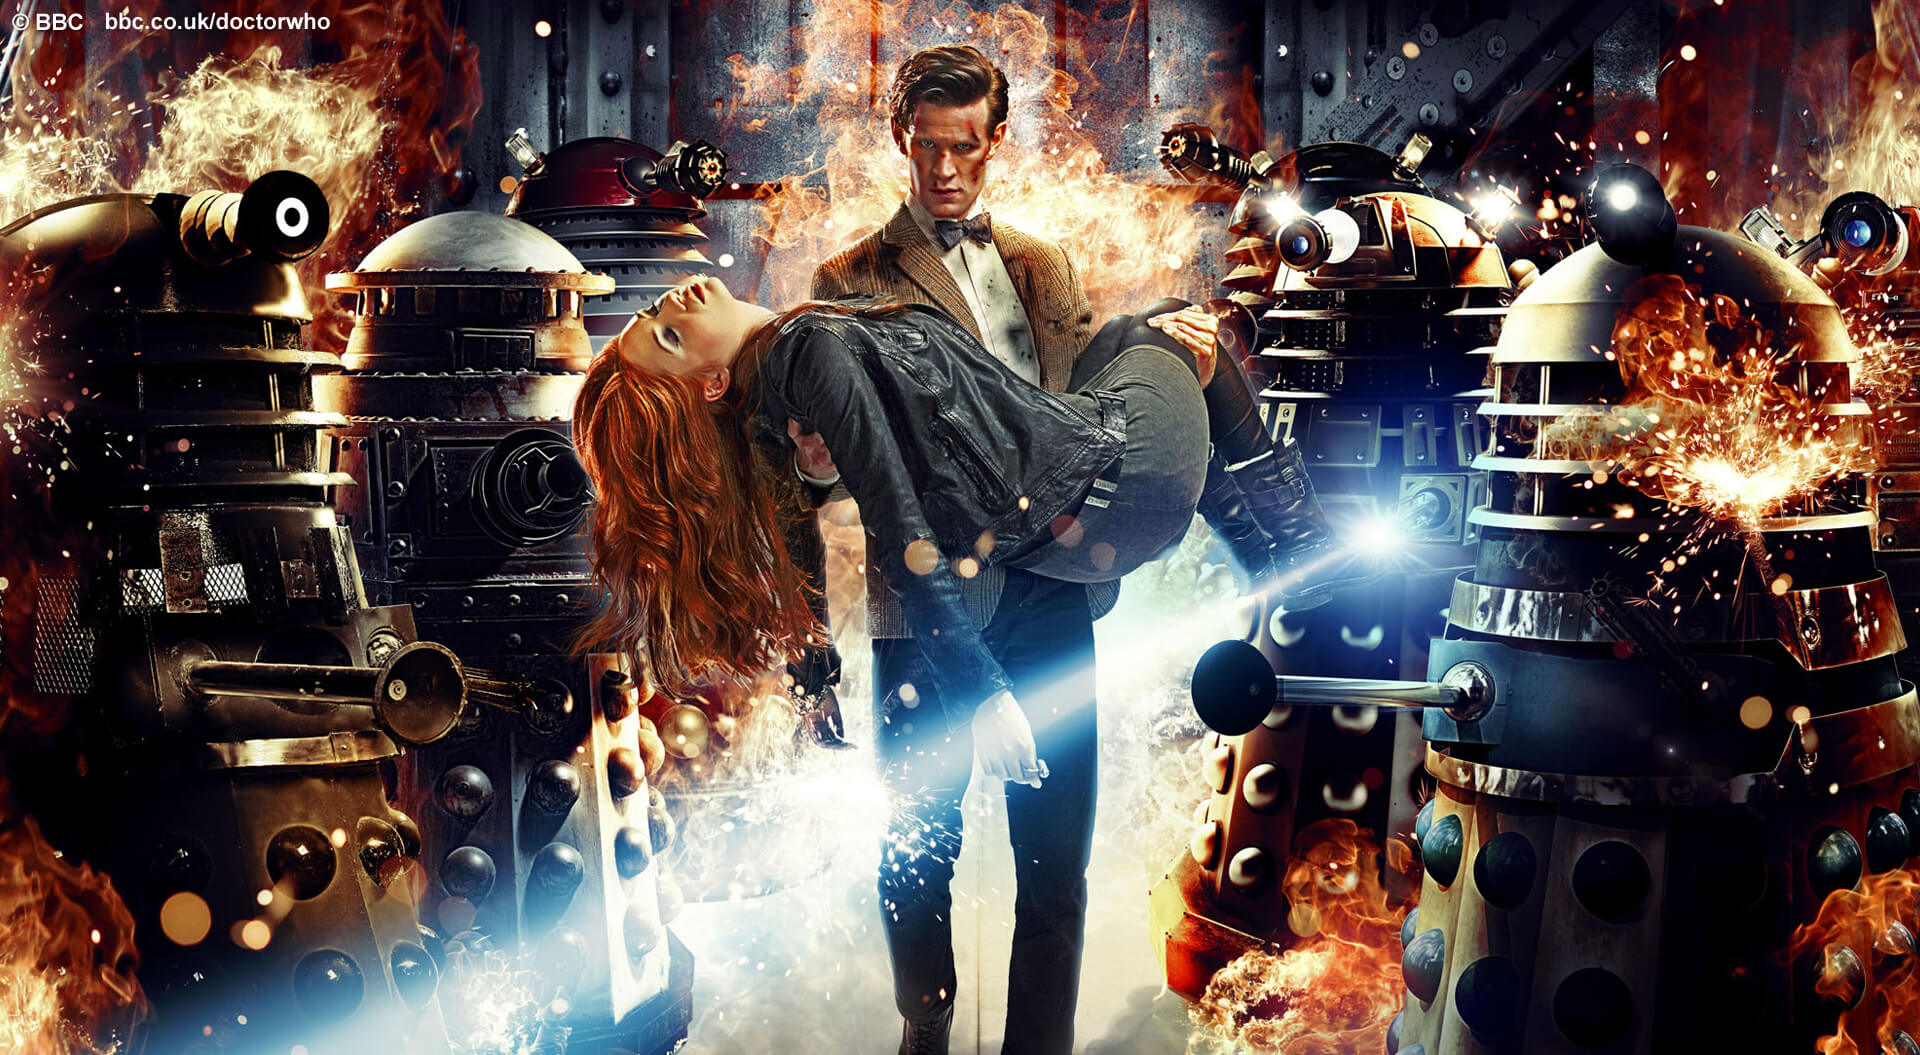 Doctor-Who-Season-7.jpg